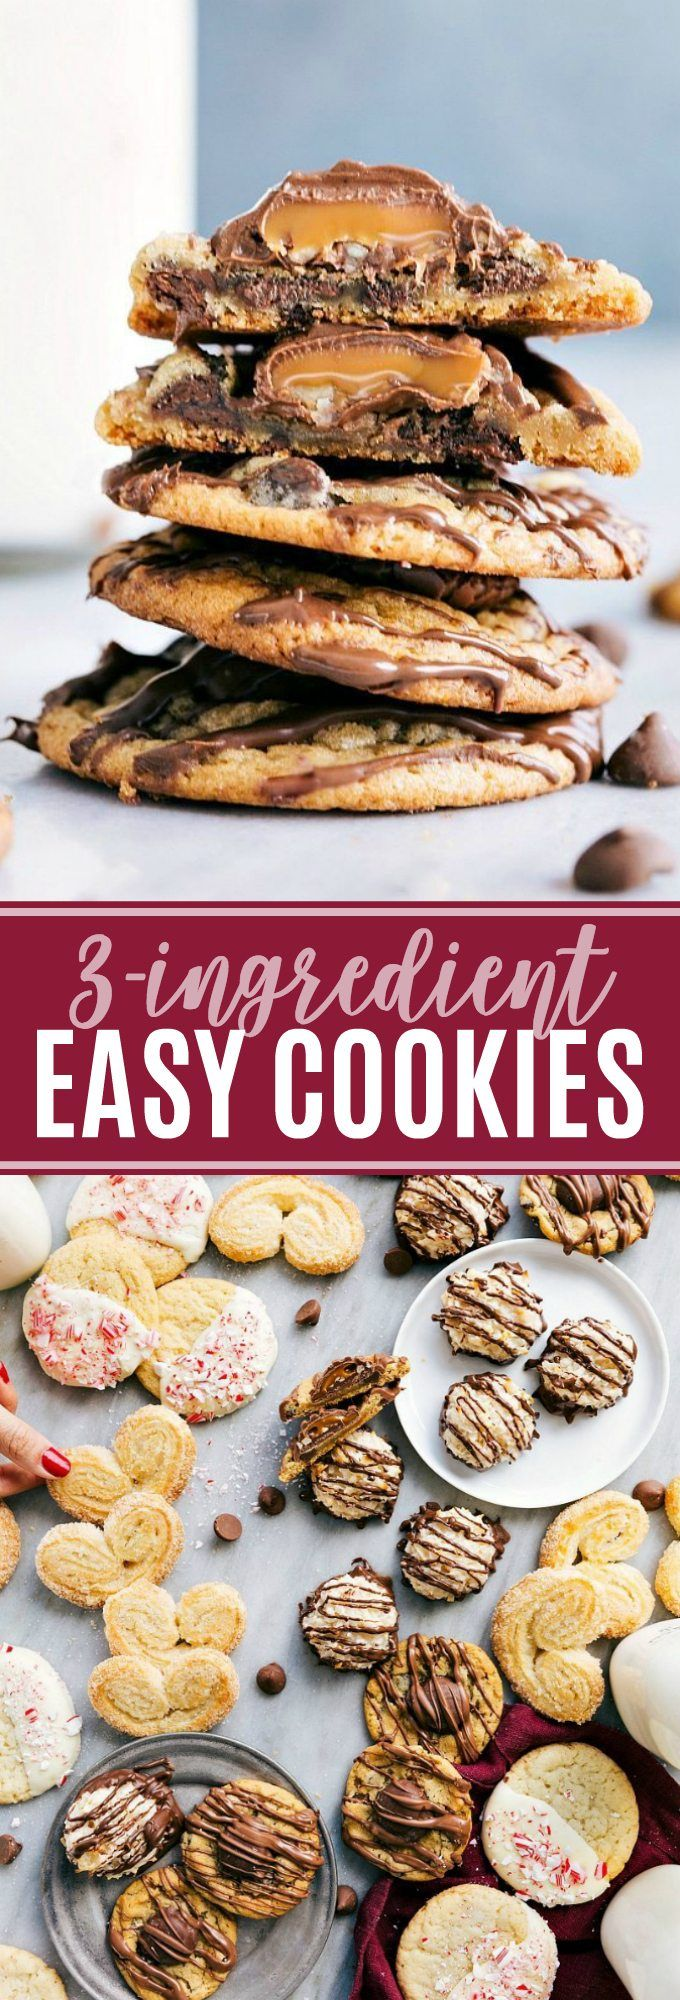 3-Ingredient Christmas Cookies | Chelsea's Messy Apron